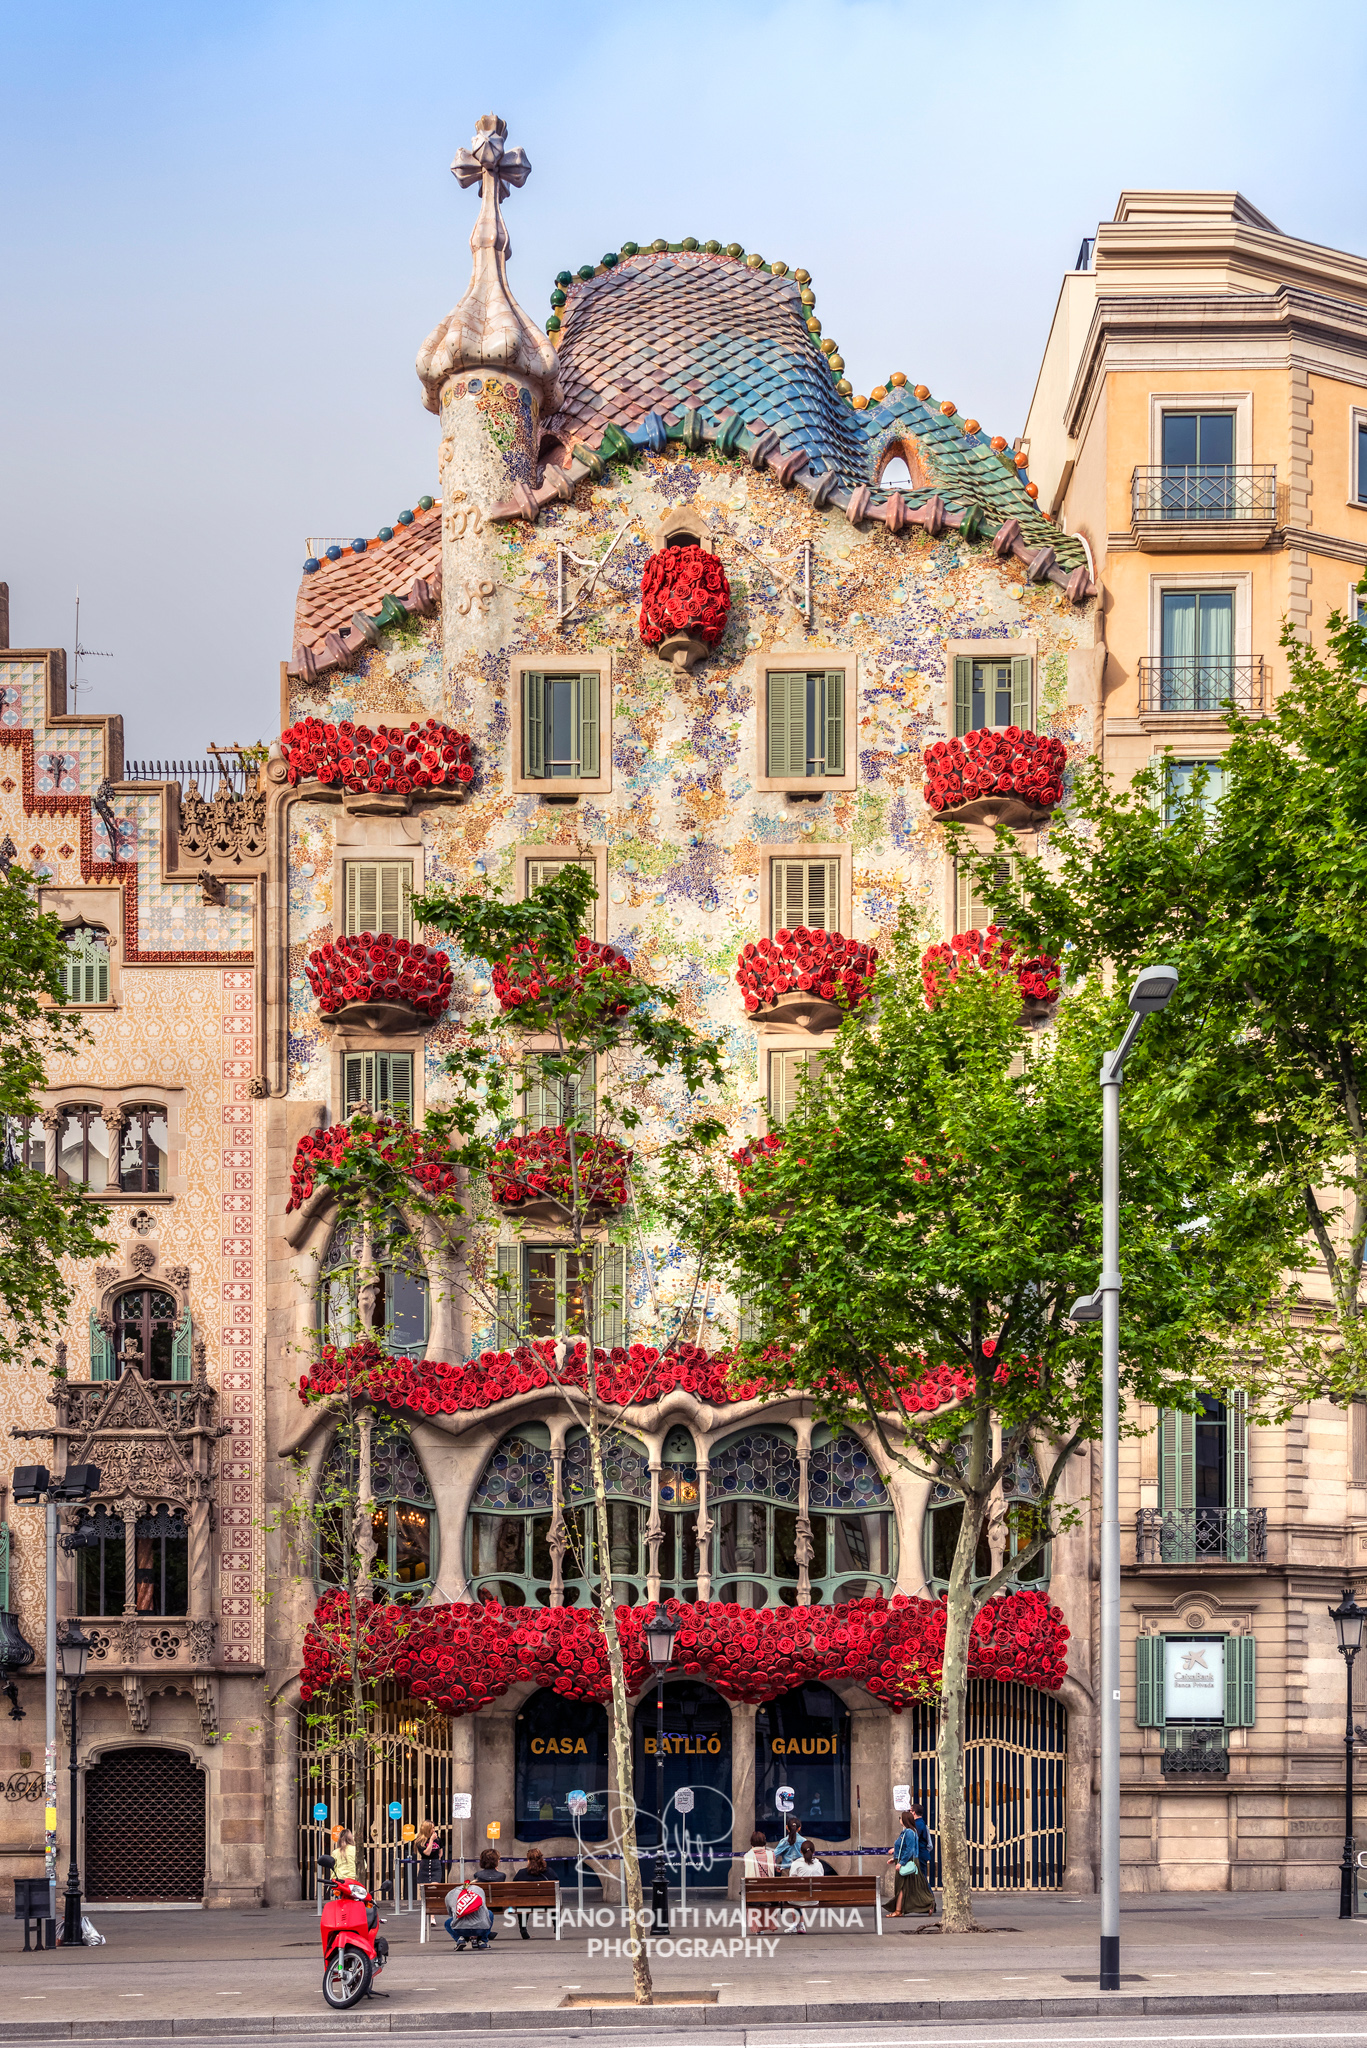 Casa Batllò adorned with roses to celebrate Saint George's Day